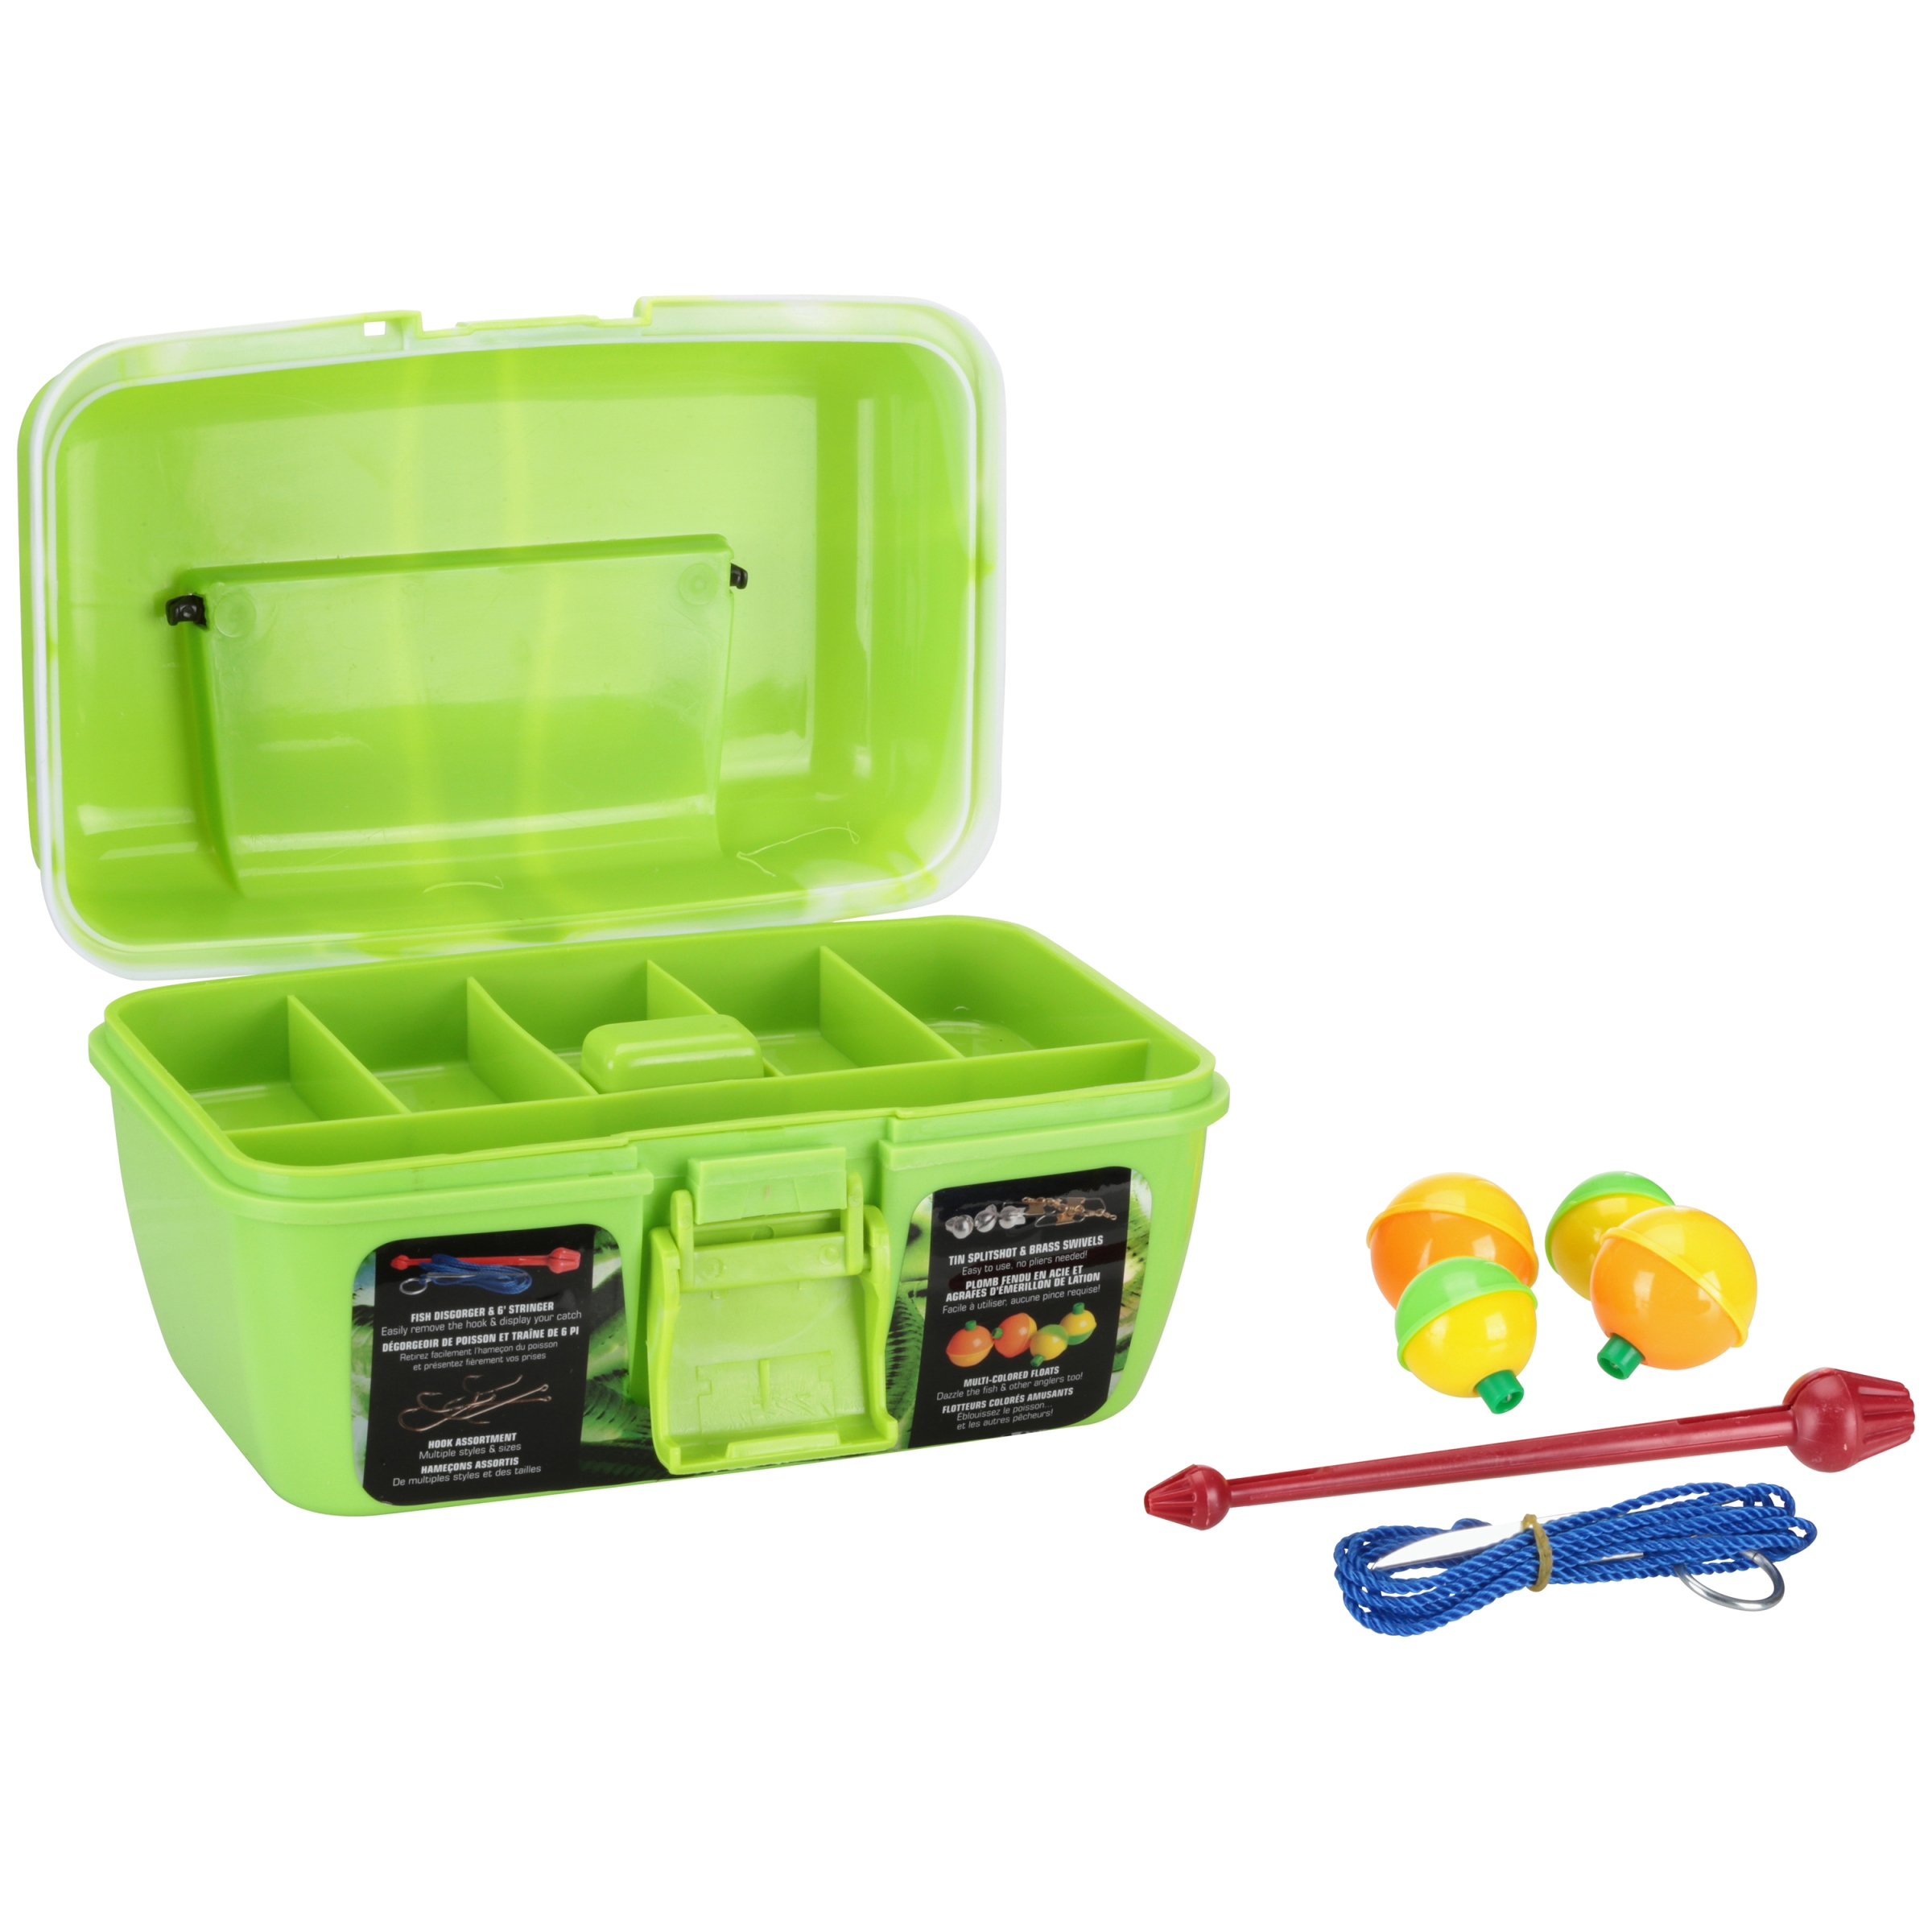 South Bend® Wormgear Green Tackle Assortment 88 pc Tackle Box